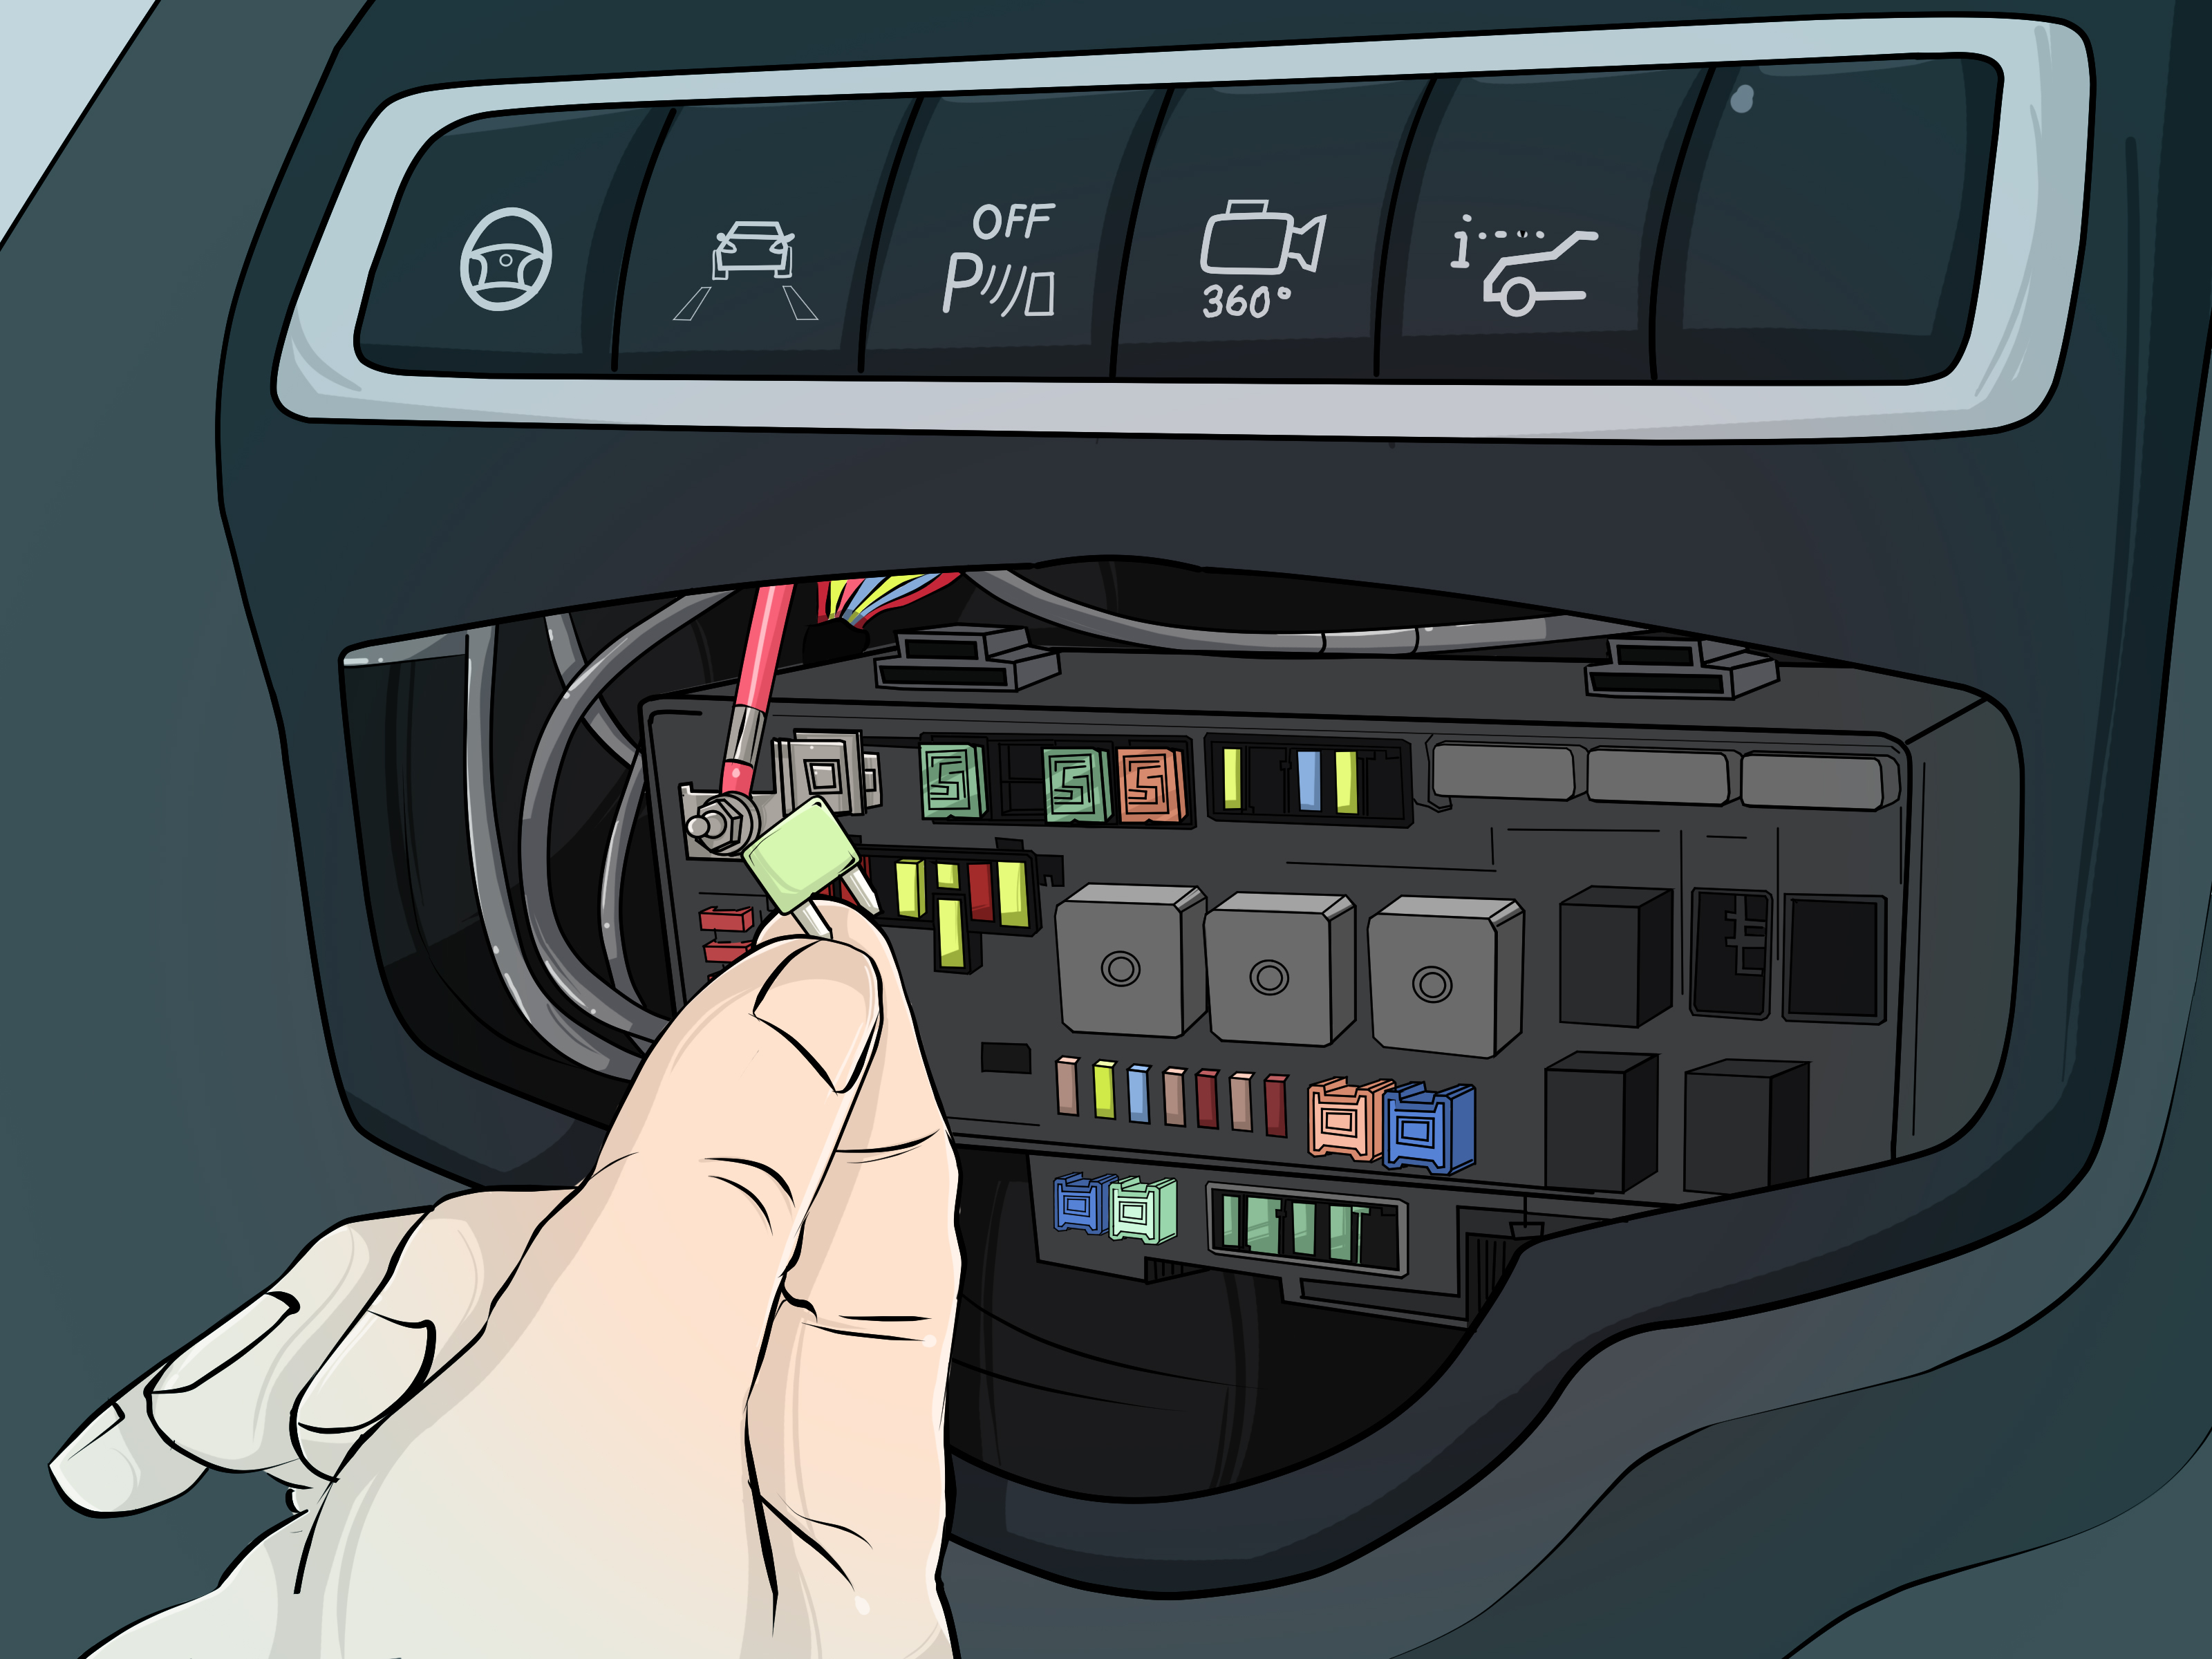 2000 Toyota Corolla Inside Fuse Box Diagram 3 Ways To Fix Dashboard Lights That Won T Light Wikihow